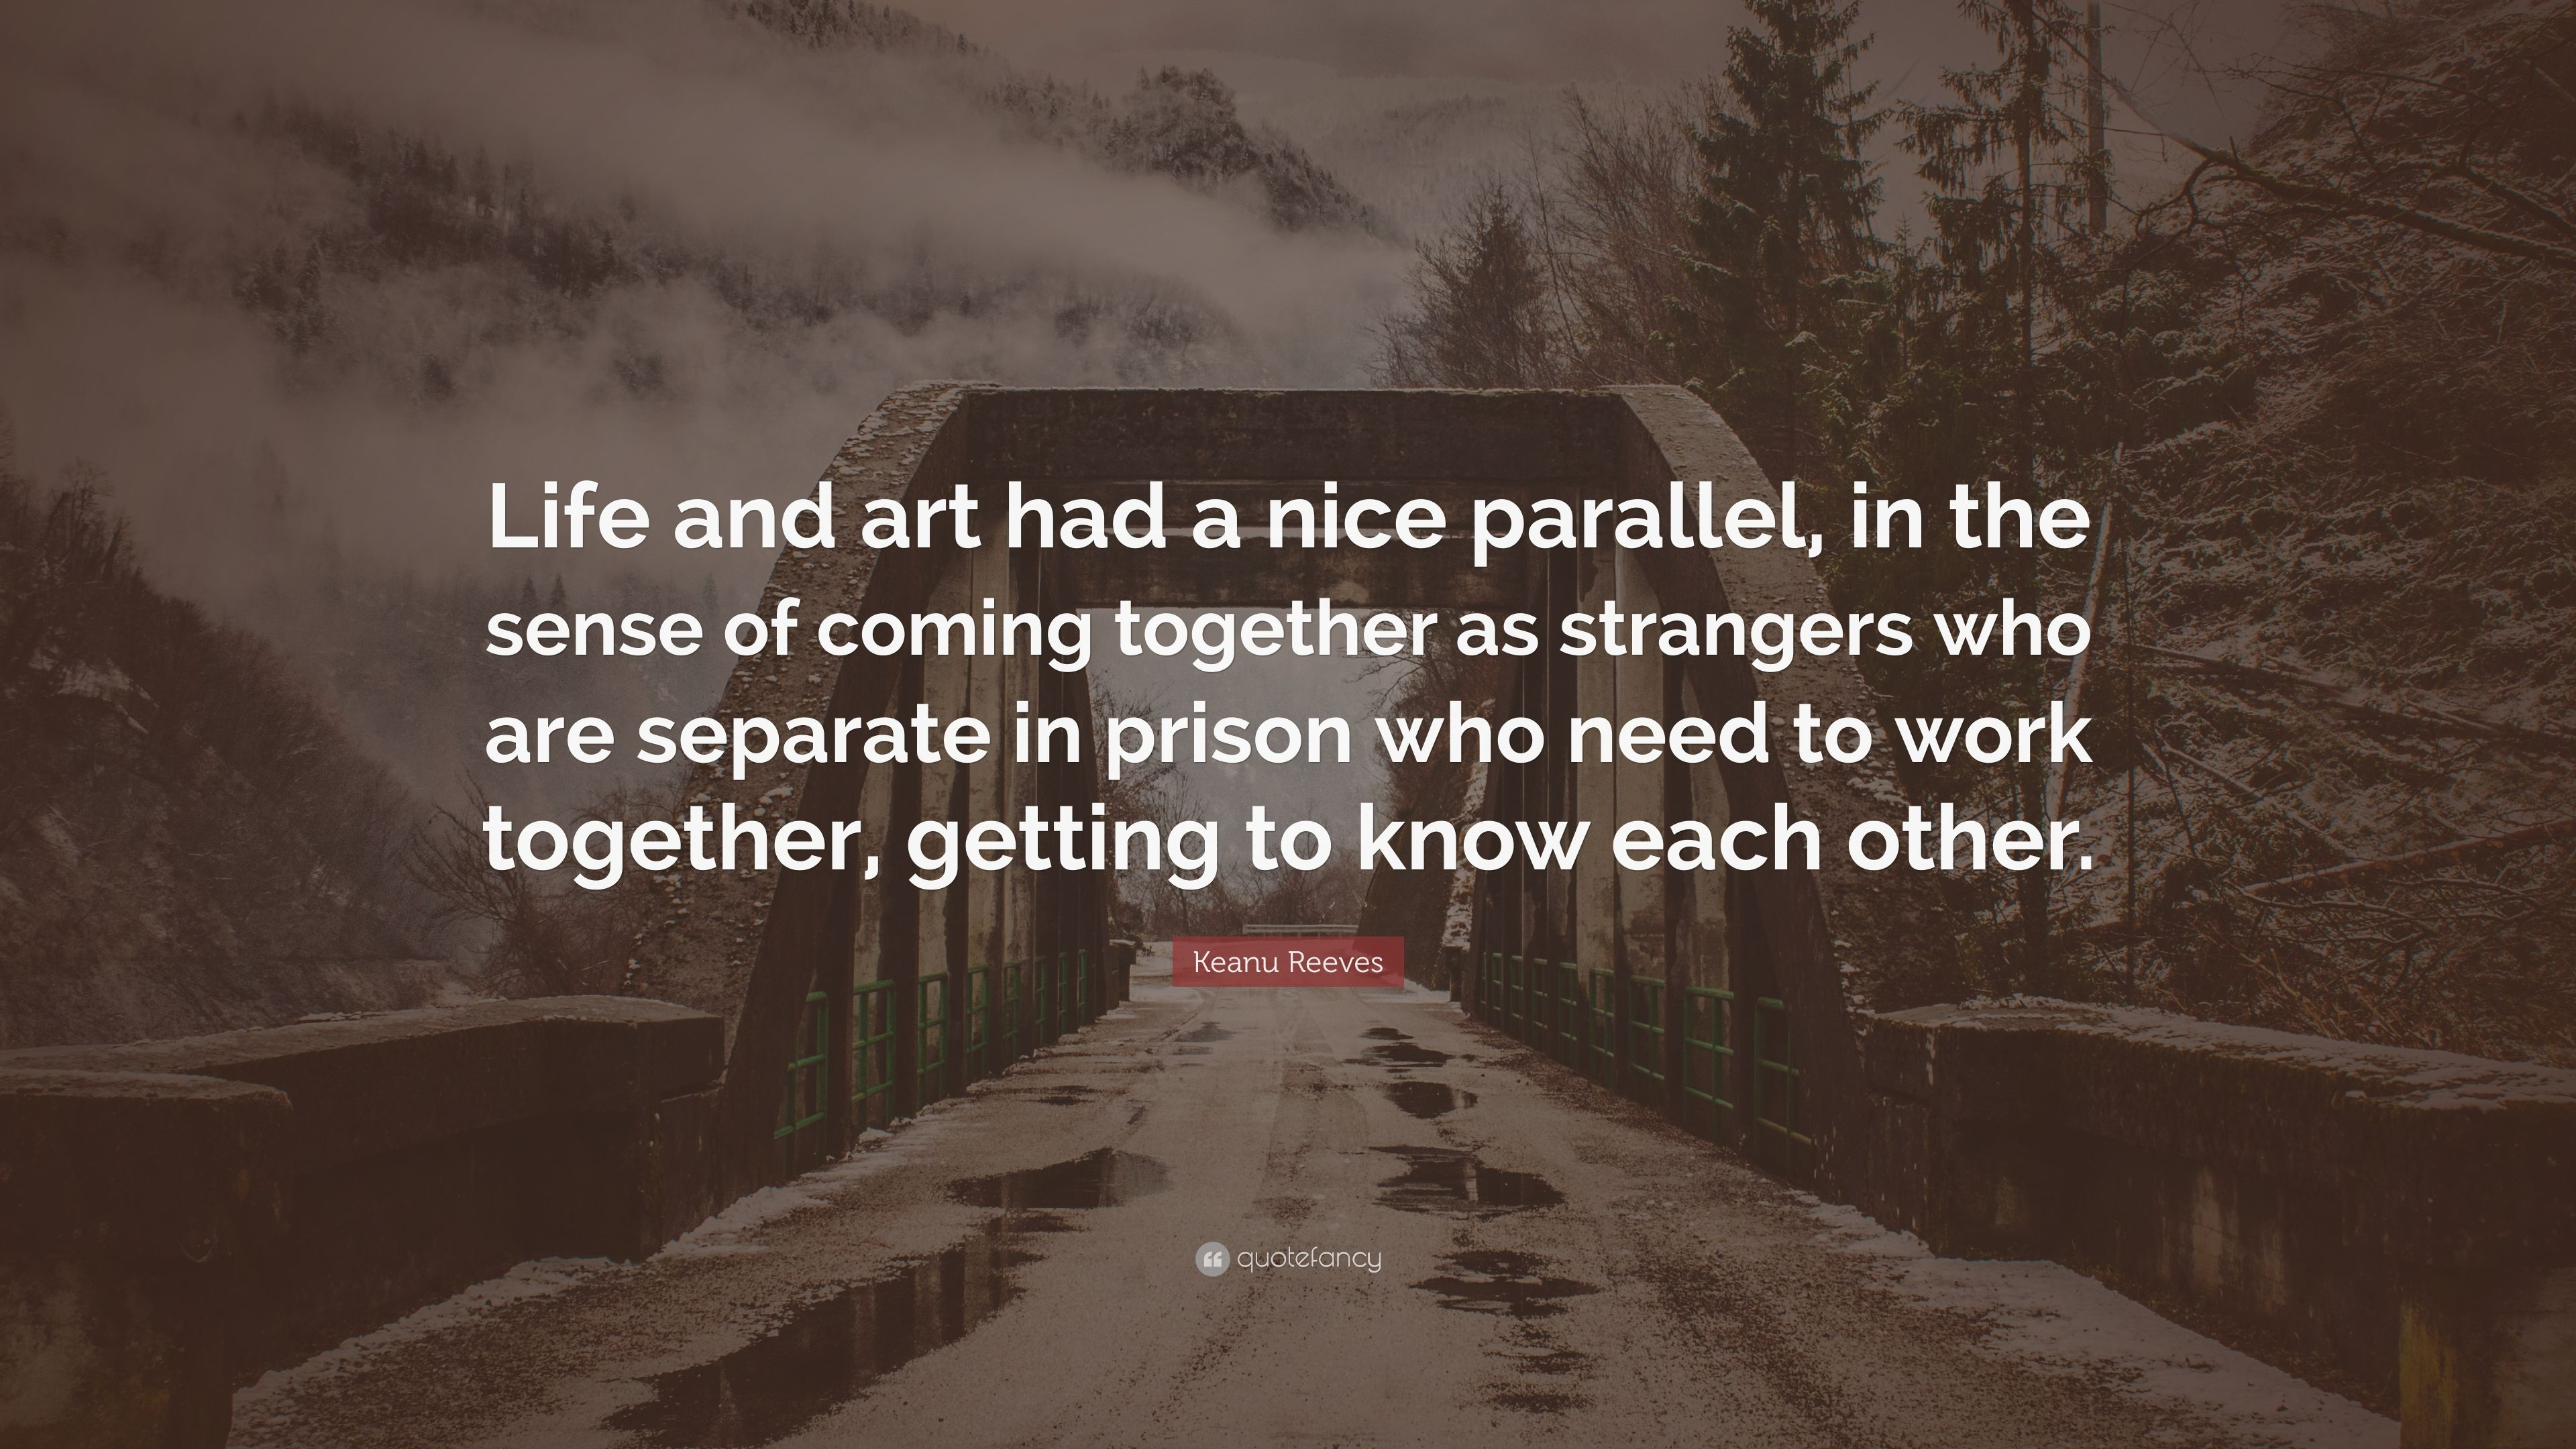 Keanu Reeves Quote Life And Art Had A Nice Parallel In The Sense